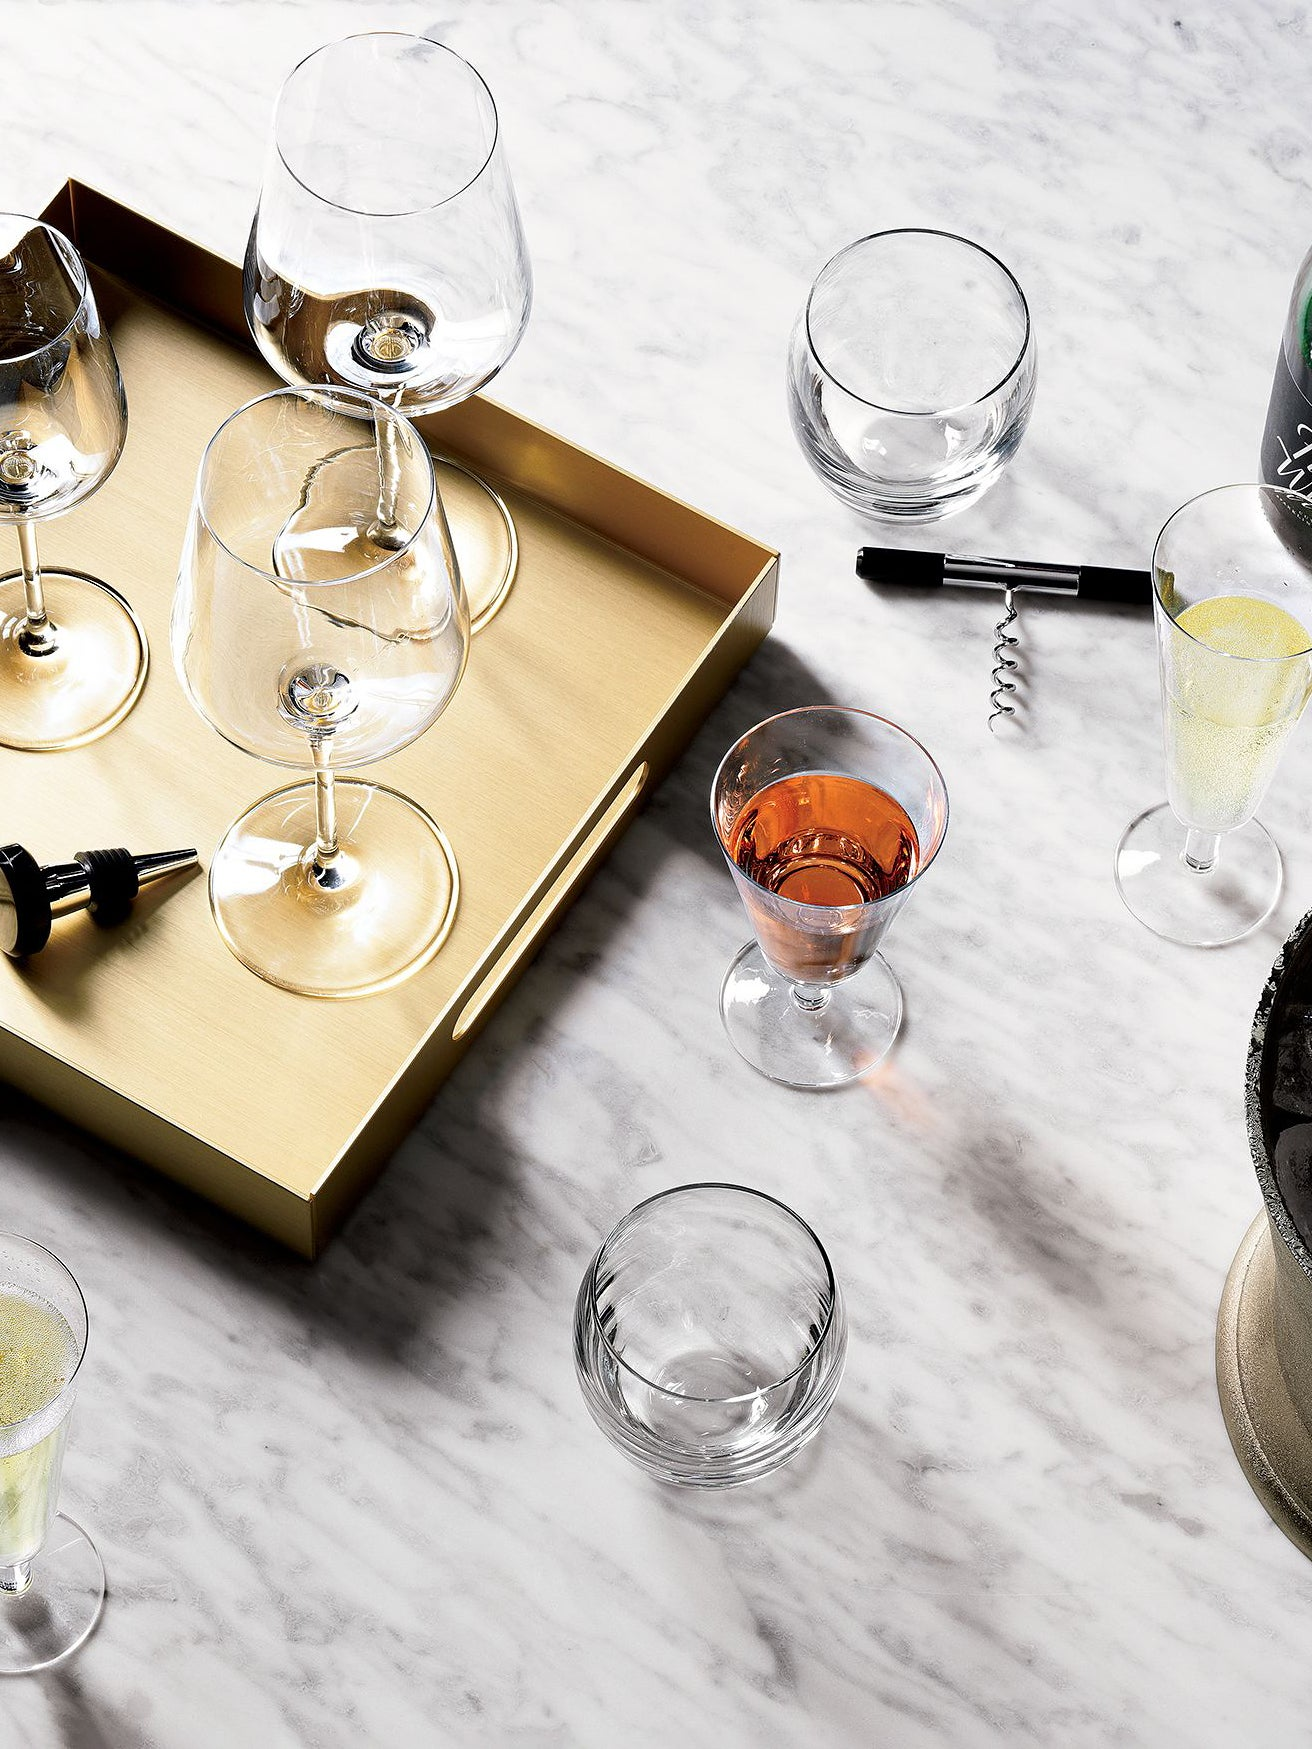 These $6 CB2 Wineglasses Are as Good as Their $60 Counterparts